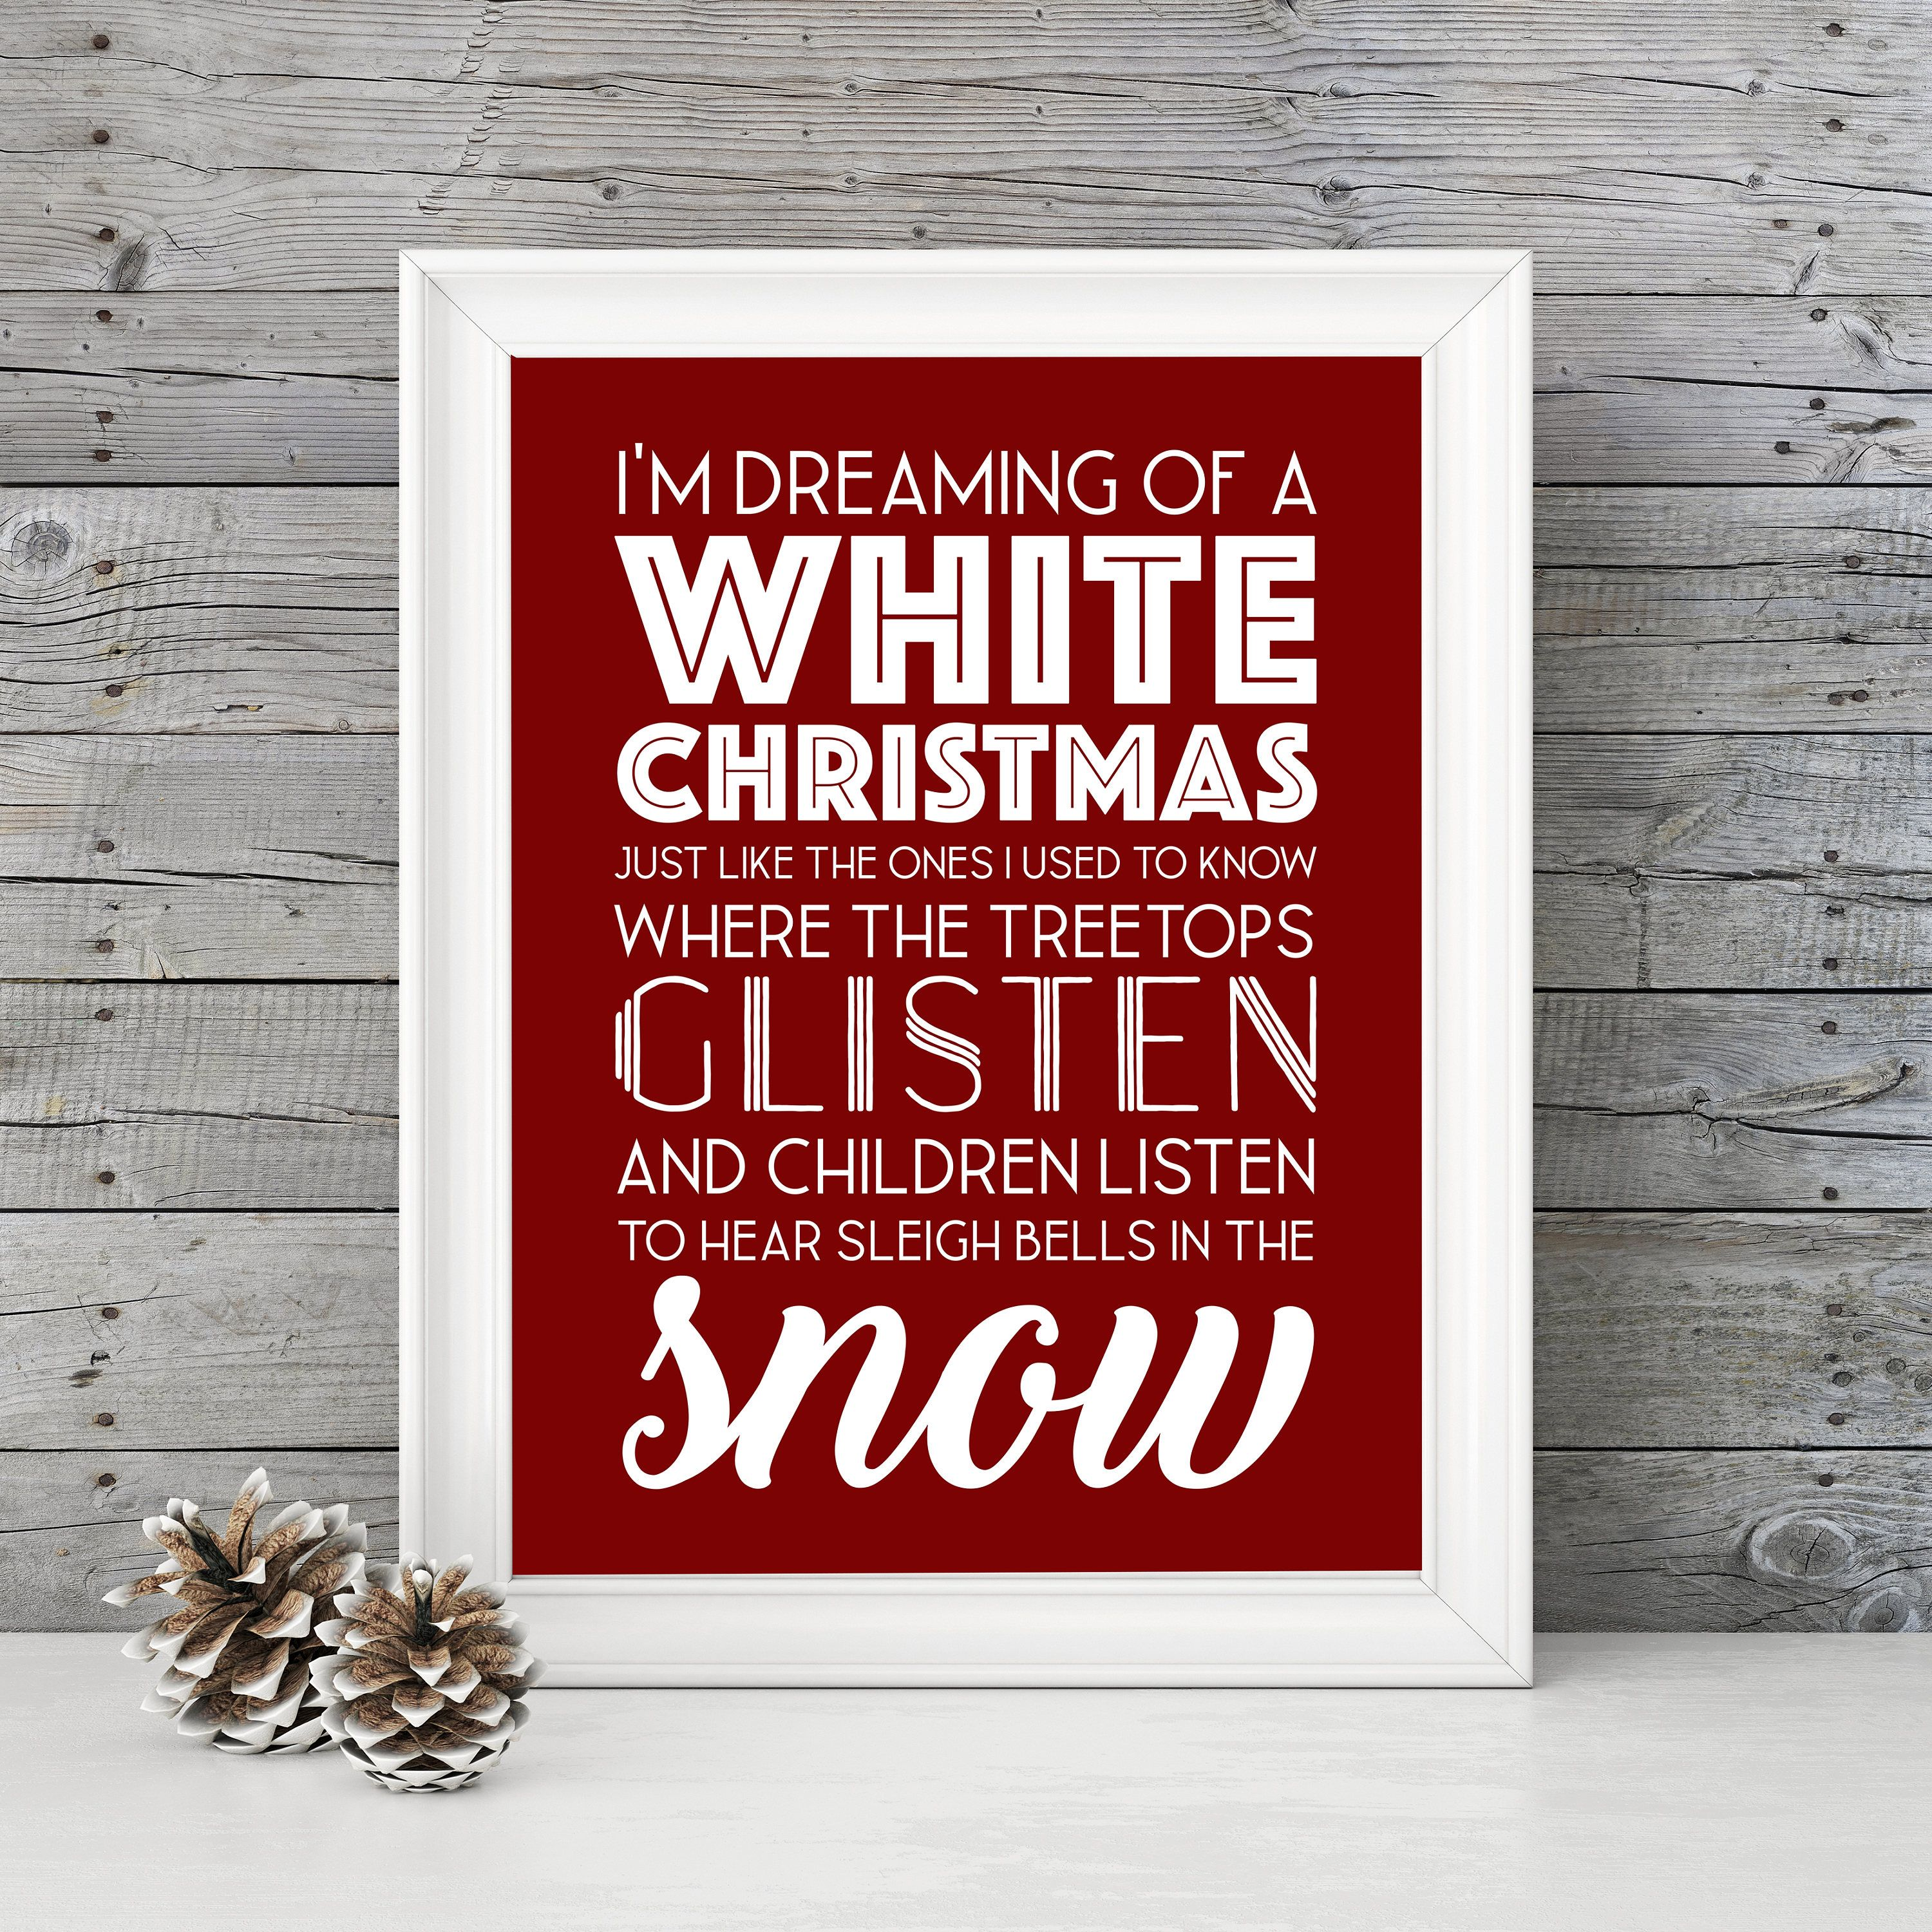 For Sale On Etsy White Christmas Im Dreaming Of A